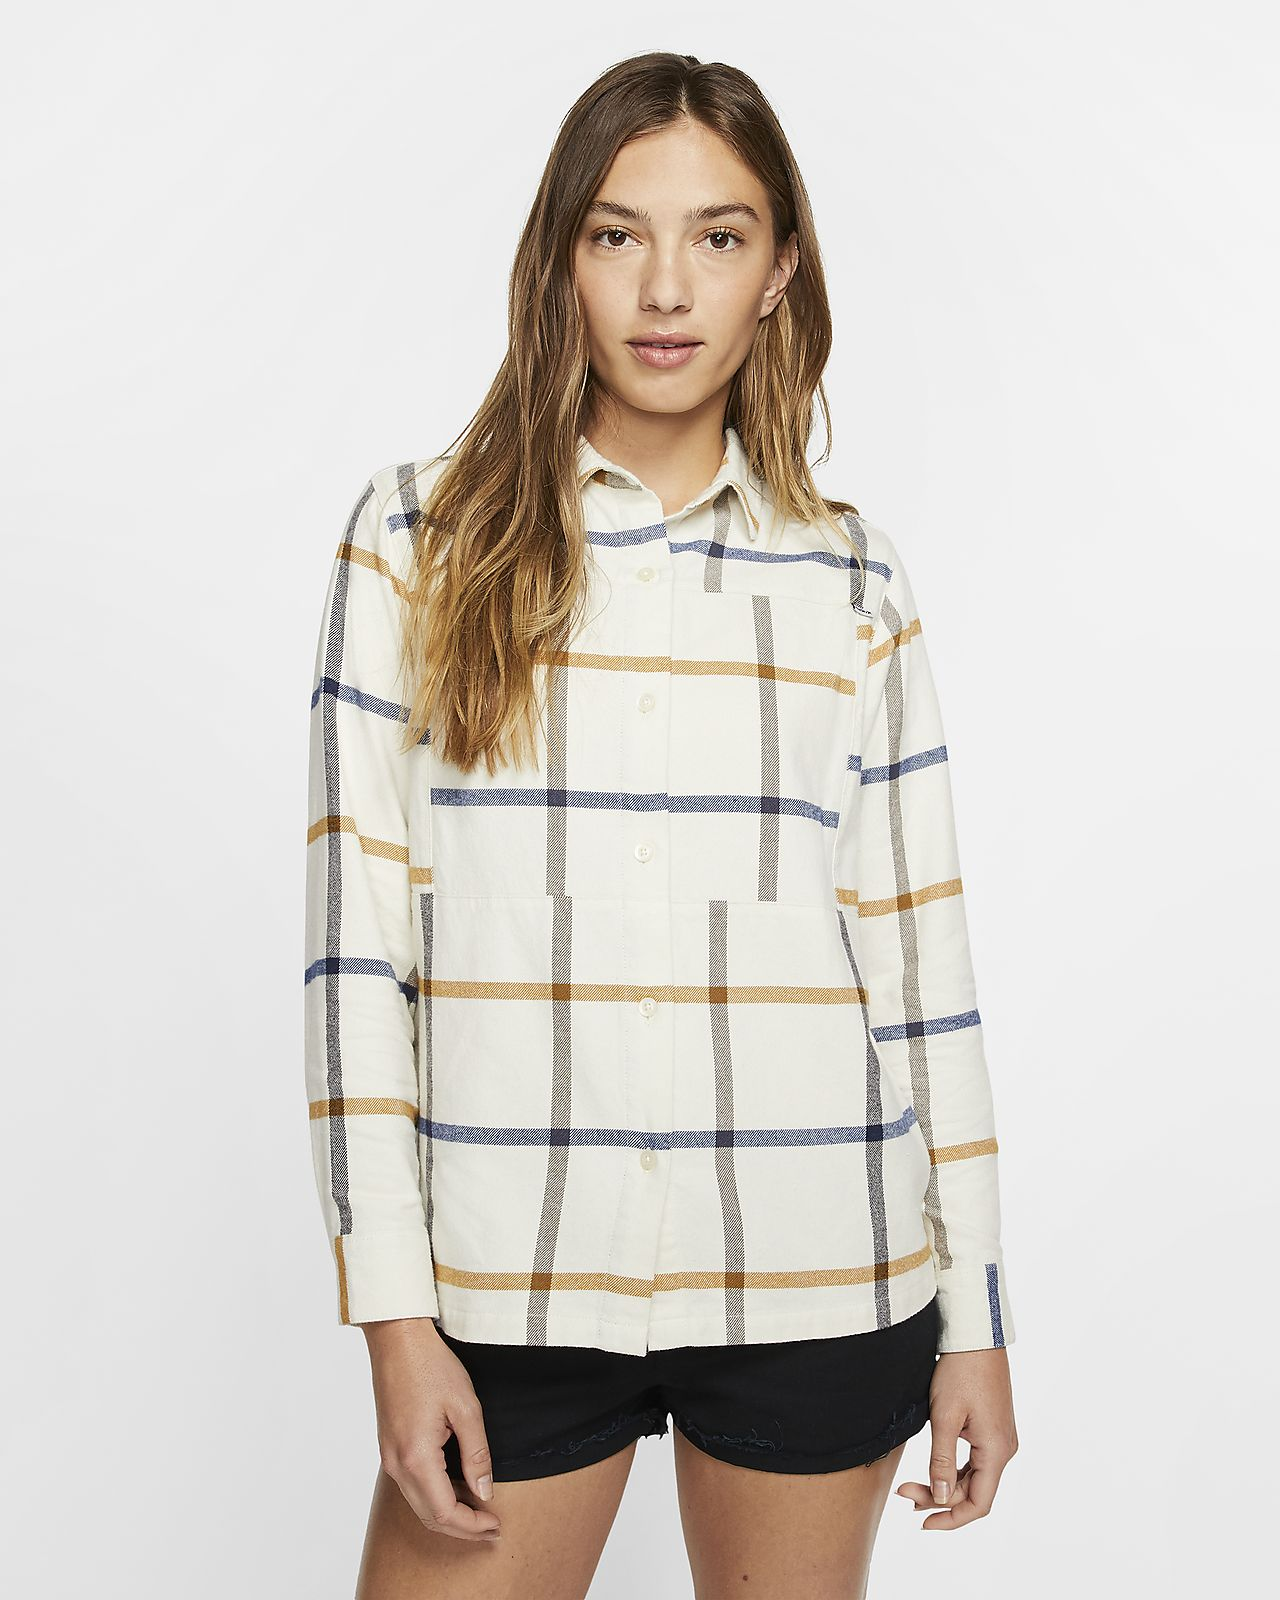 Hurley Wilson Flannel Women's Long-Sleeve Woven Top